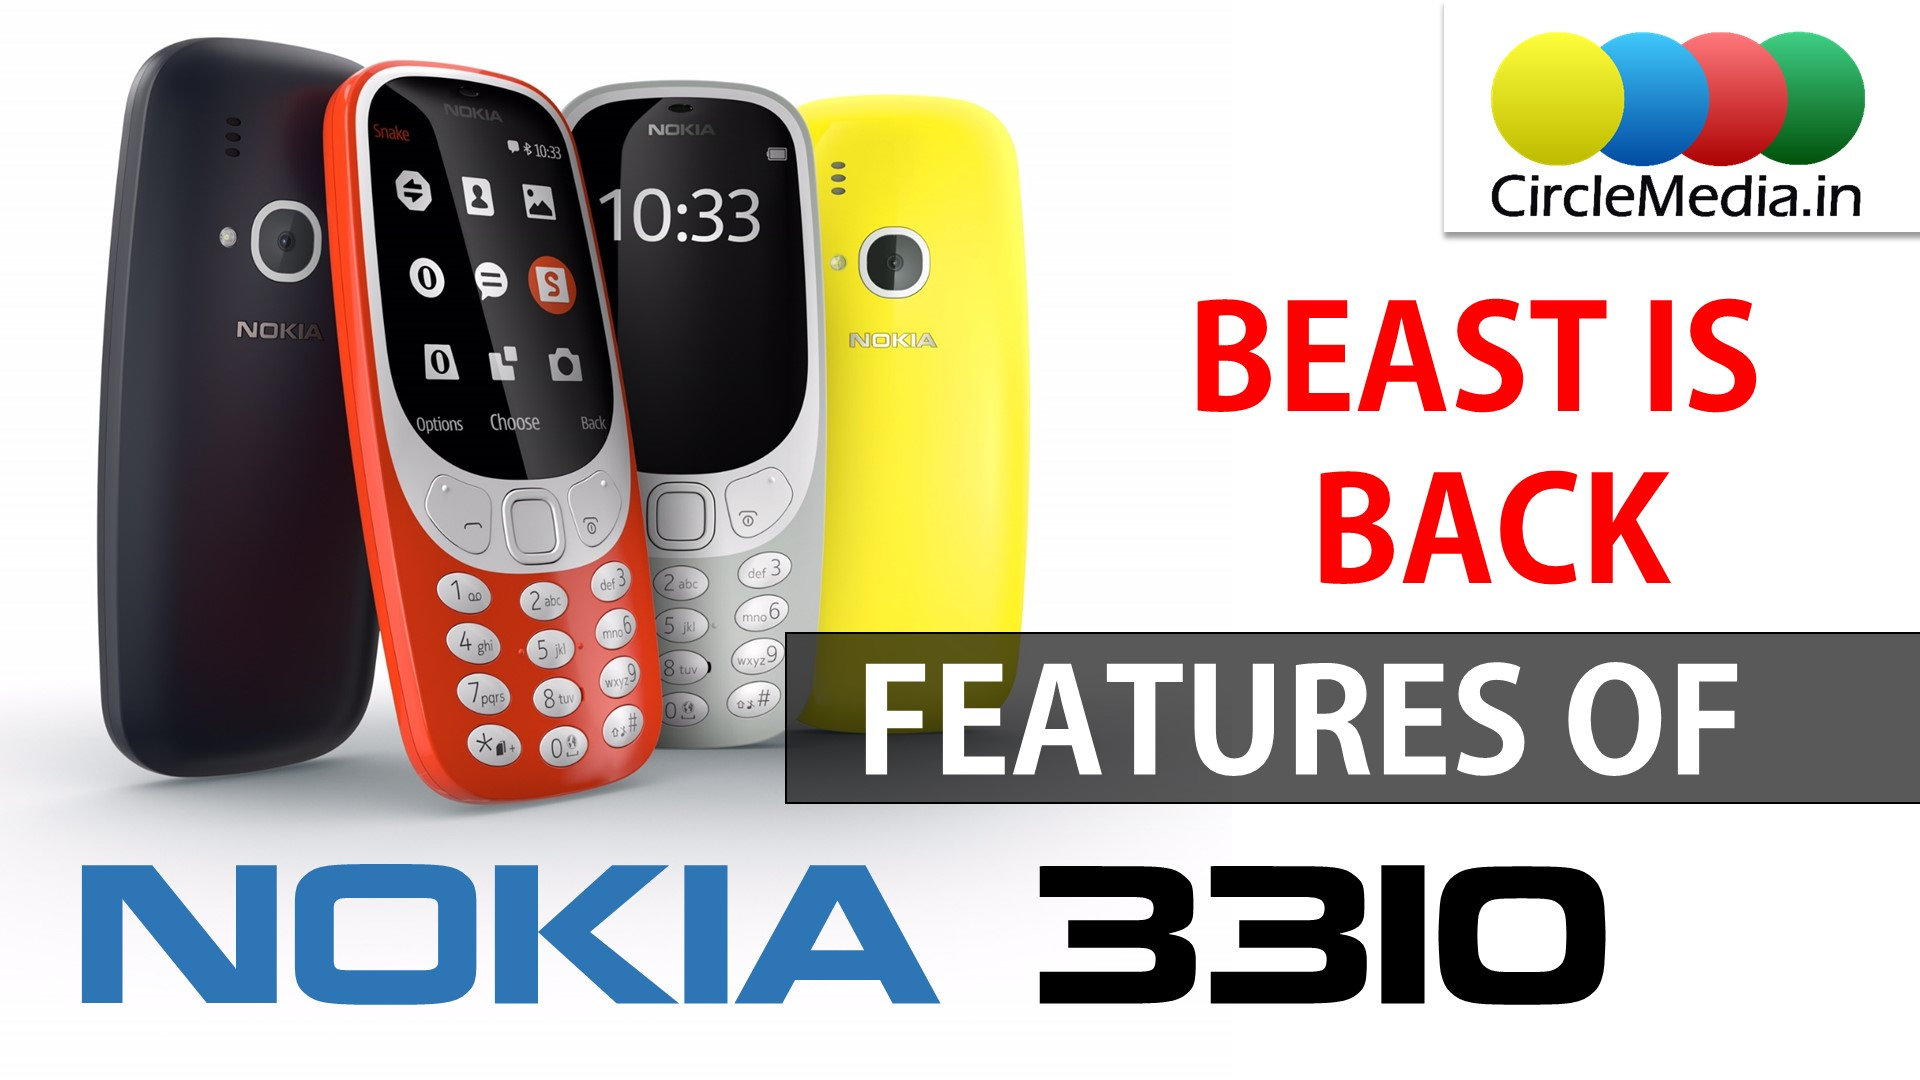 NOKIA 3310 Features | Beast is Back | NOKIA 3310 Full Specifications & Review | CircleMedia.in